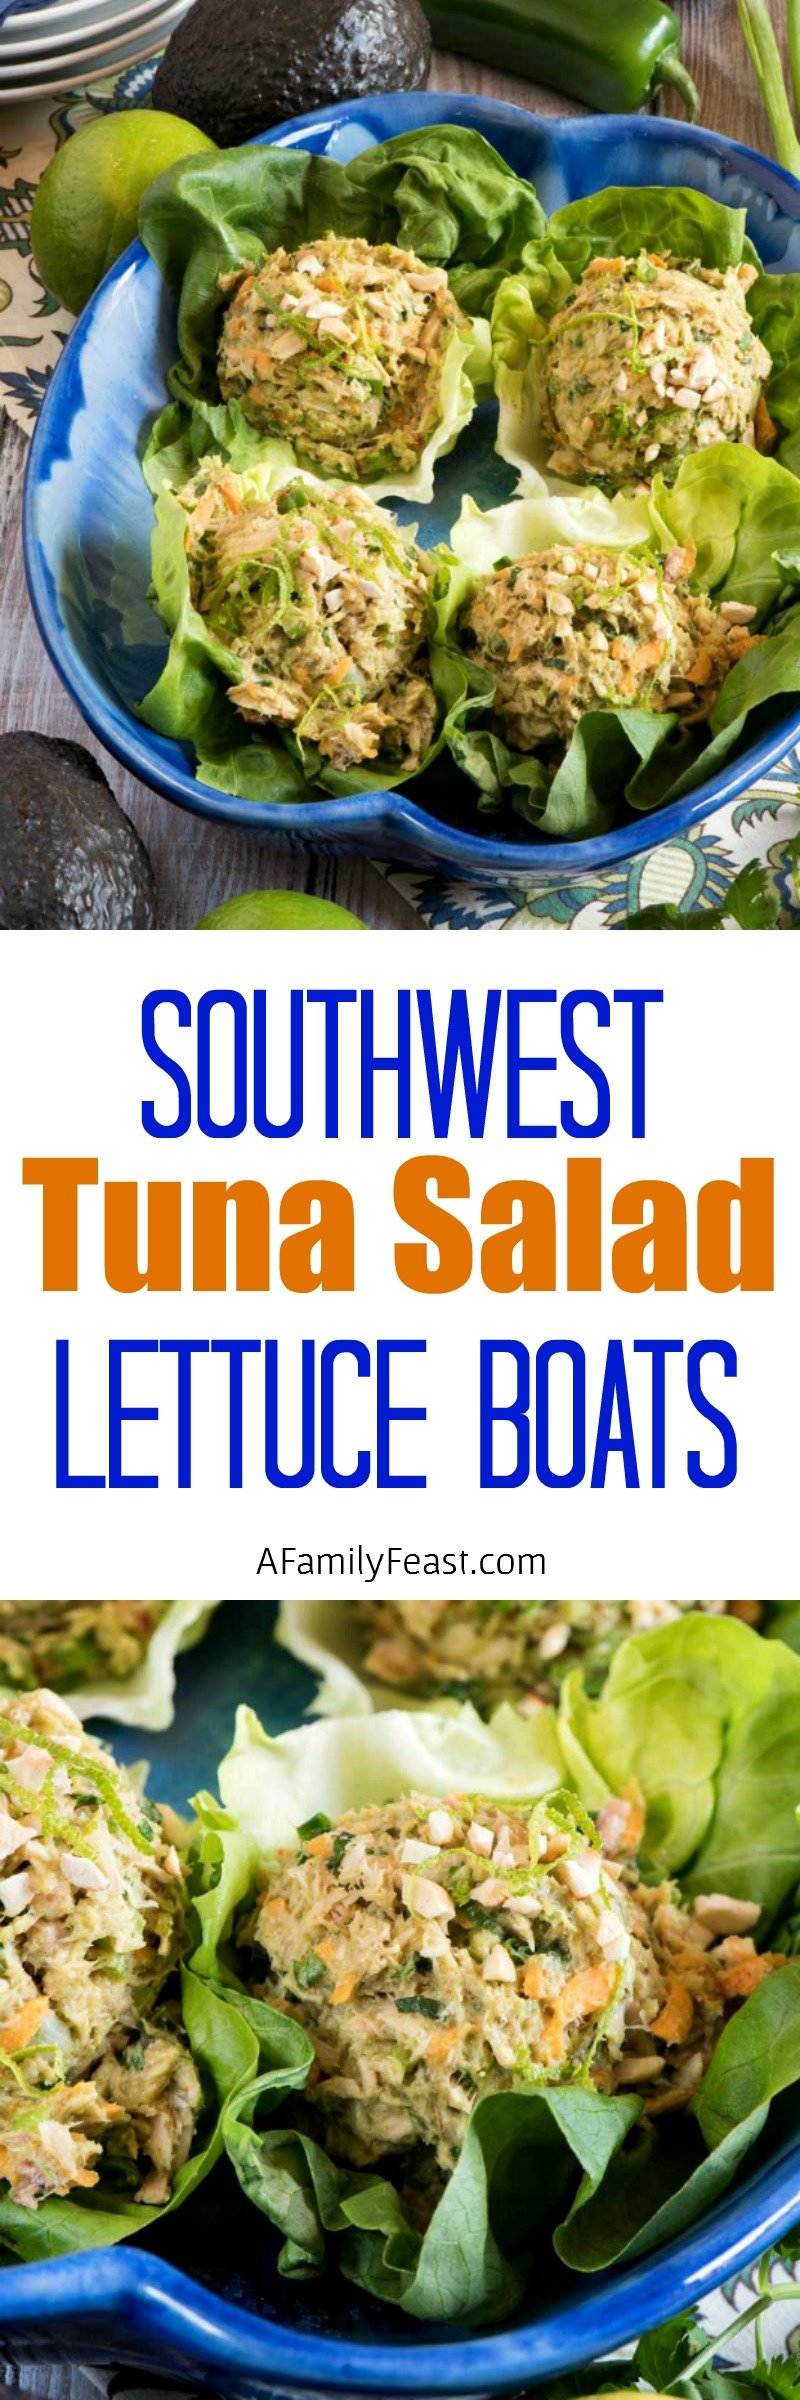 Southwest Tuna Salad Lettuce Boats - Skip the mayonnaise and make this super delicious tuna salad!